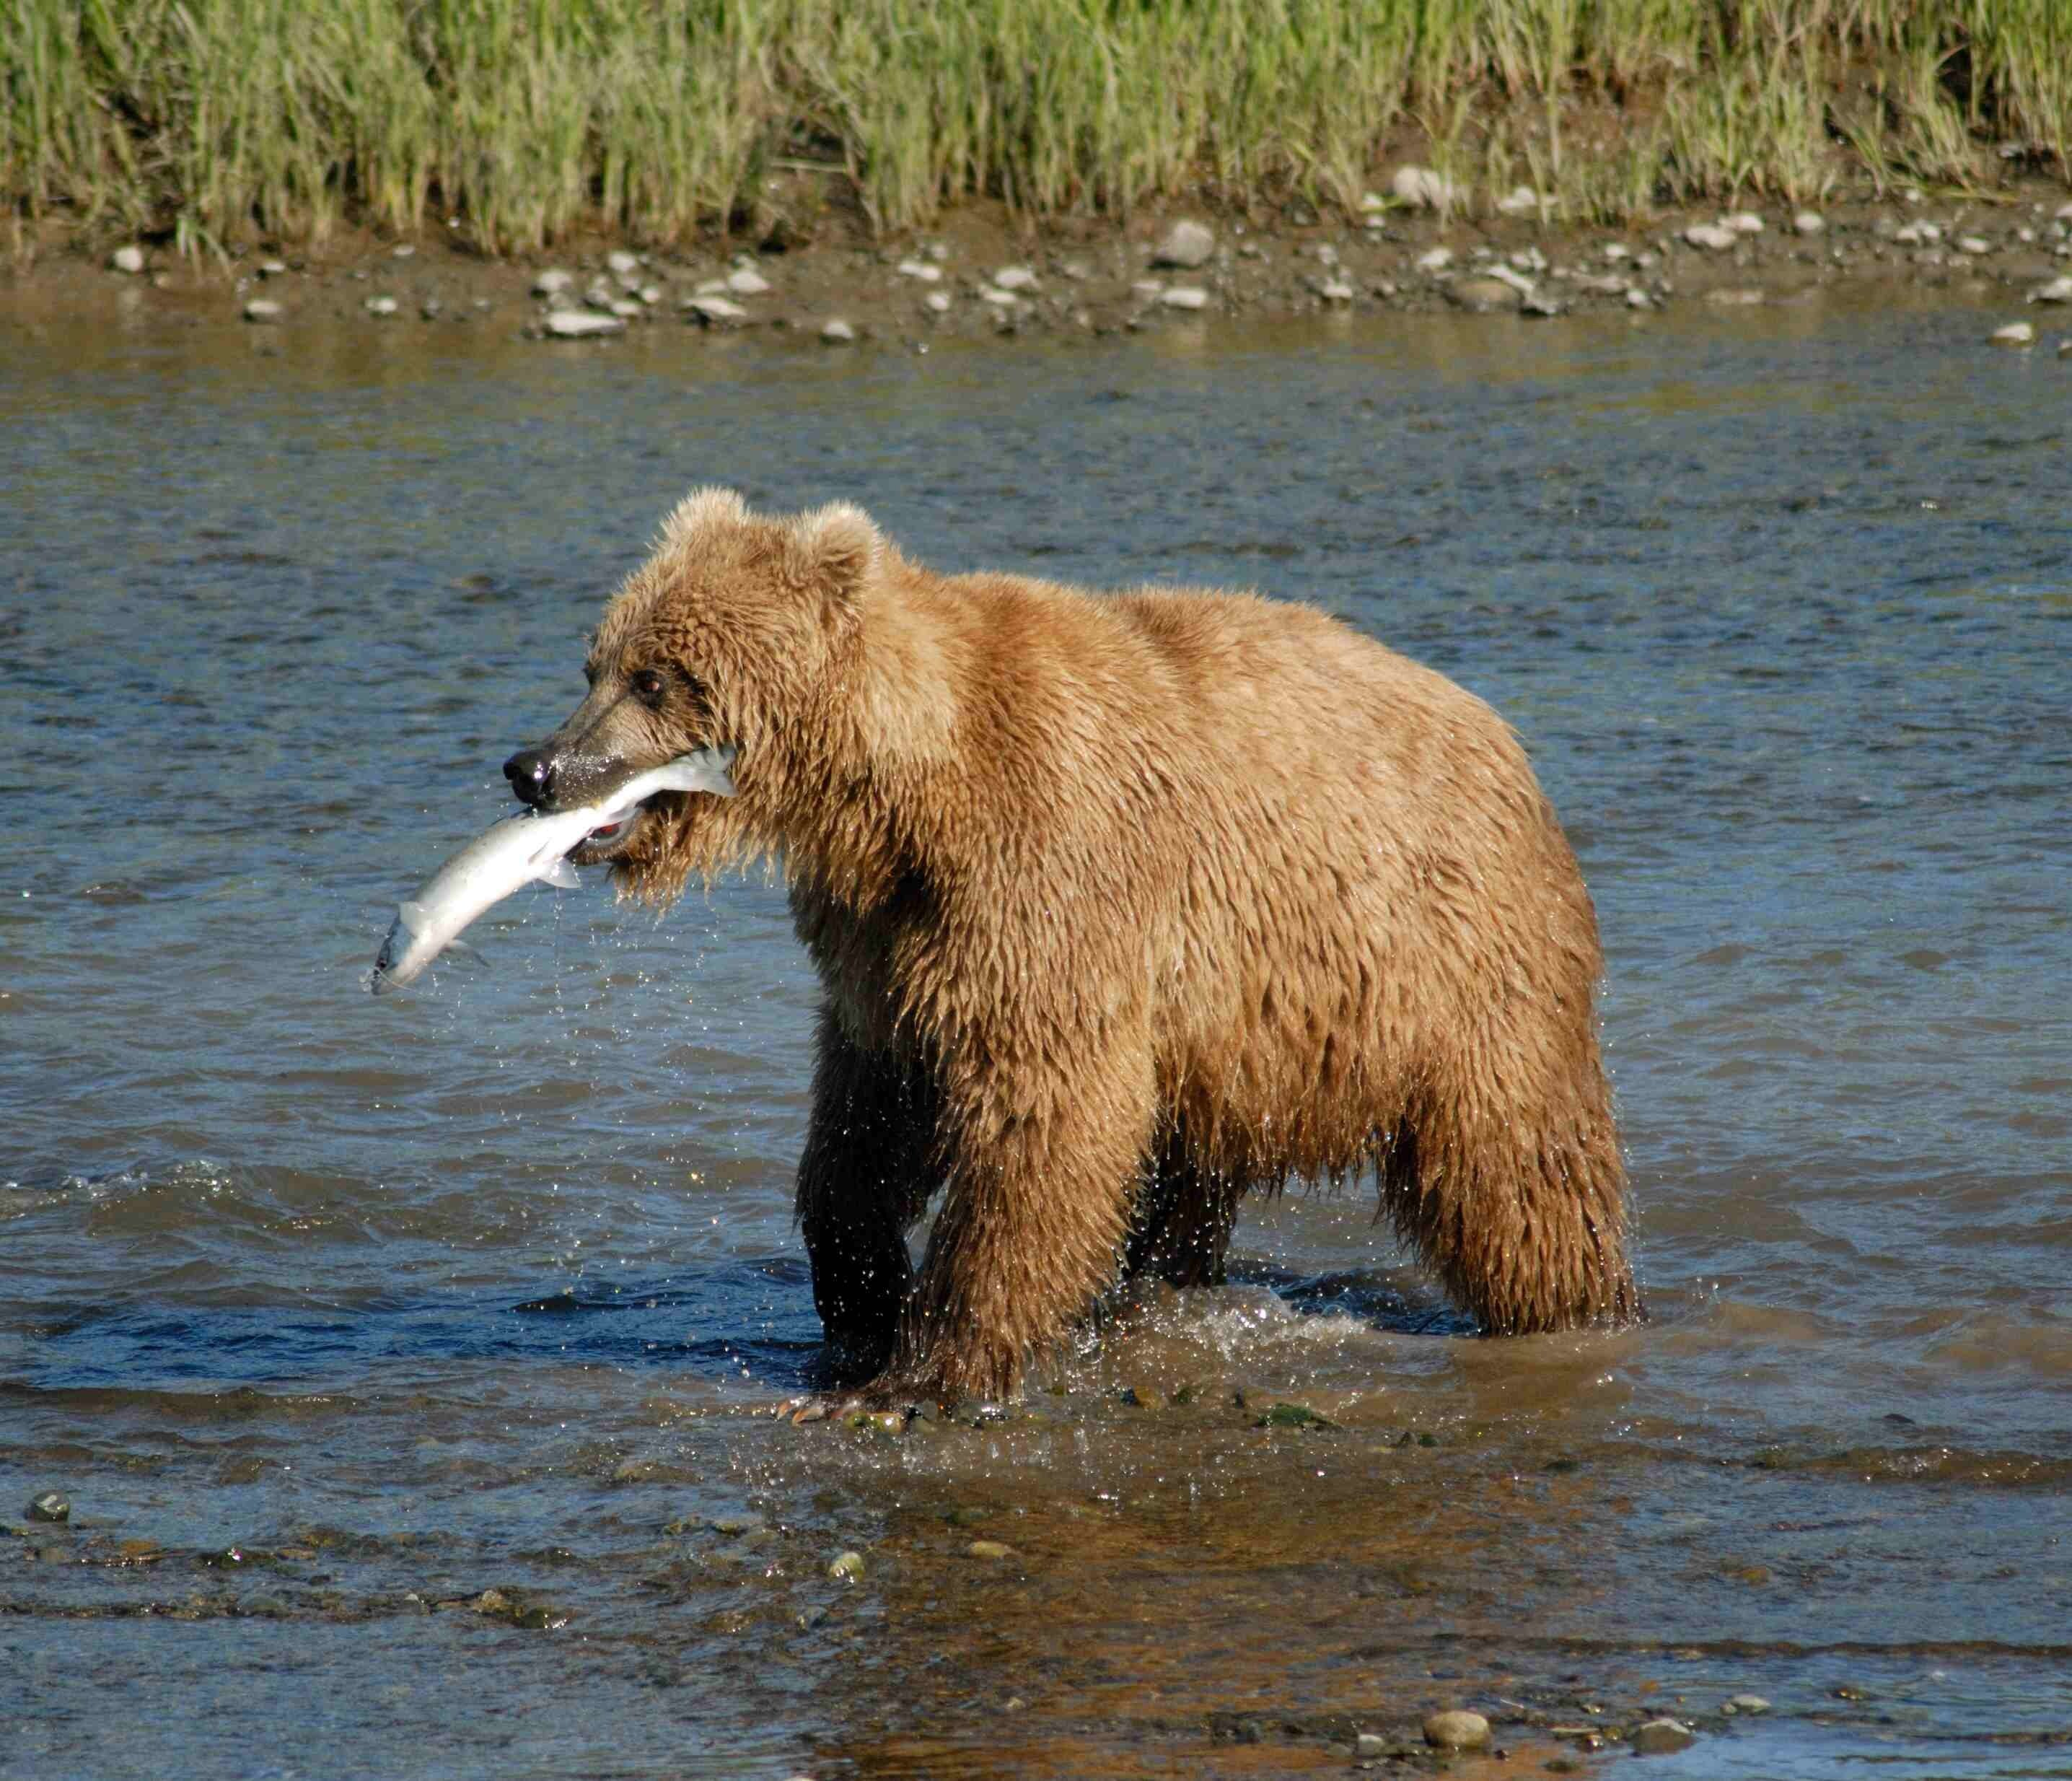 2GO Summer Breakfast - A wildlife centre are offering to name a salmon for your ex, then feed it to a bear | What fell on your head while you were sleeping? | Akmal Saleh